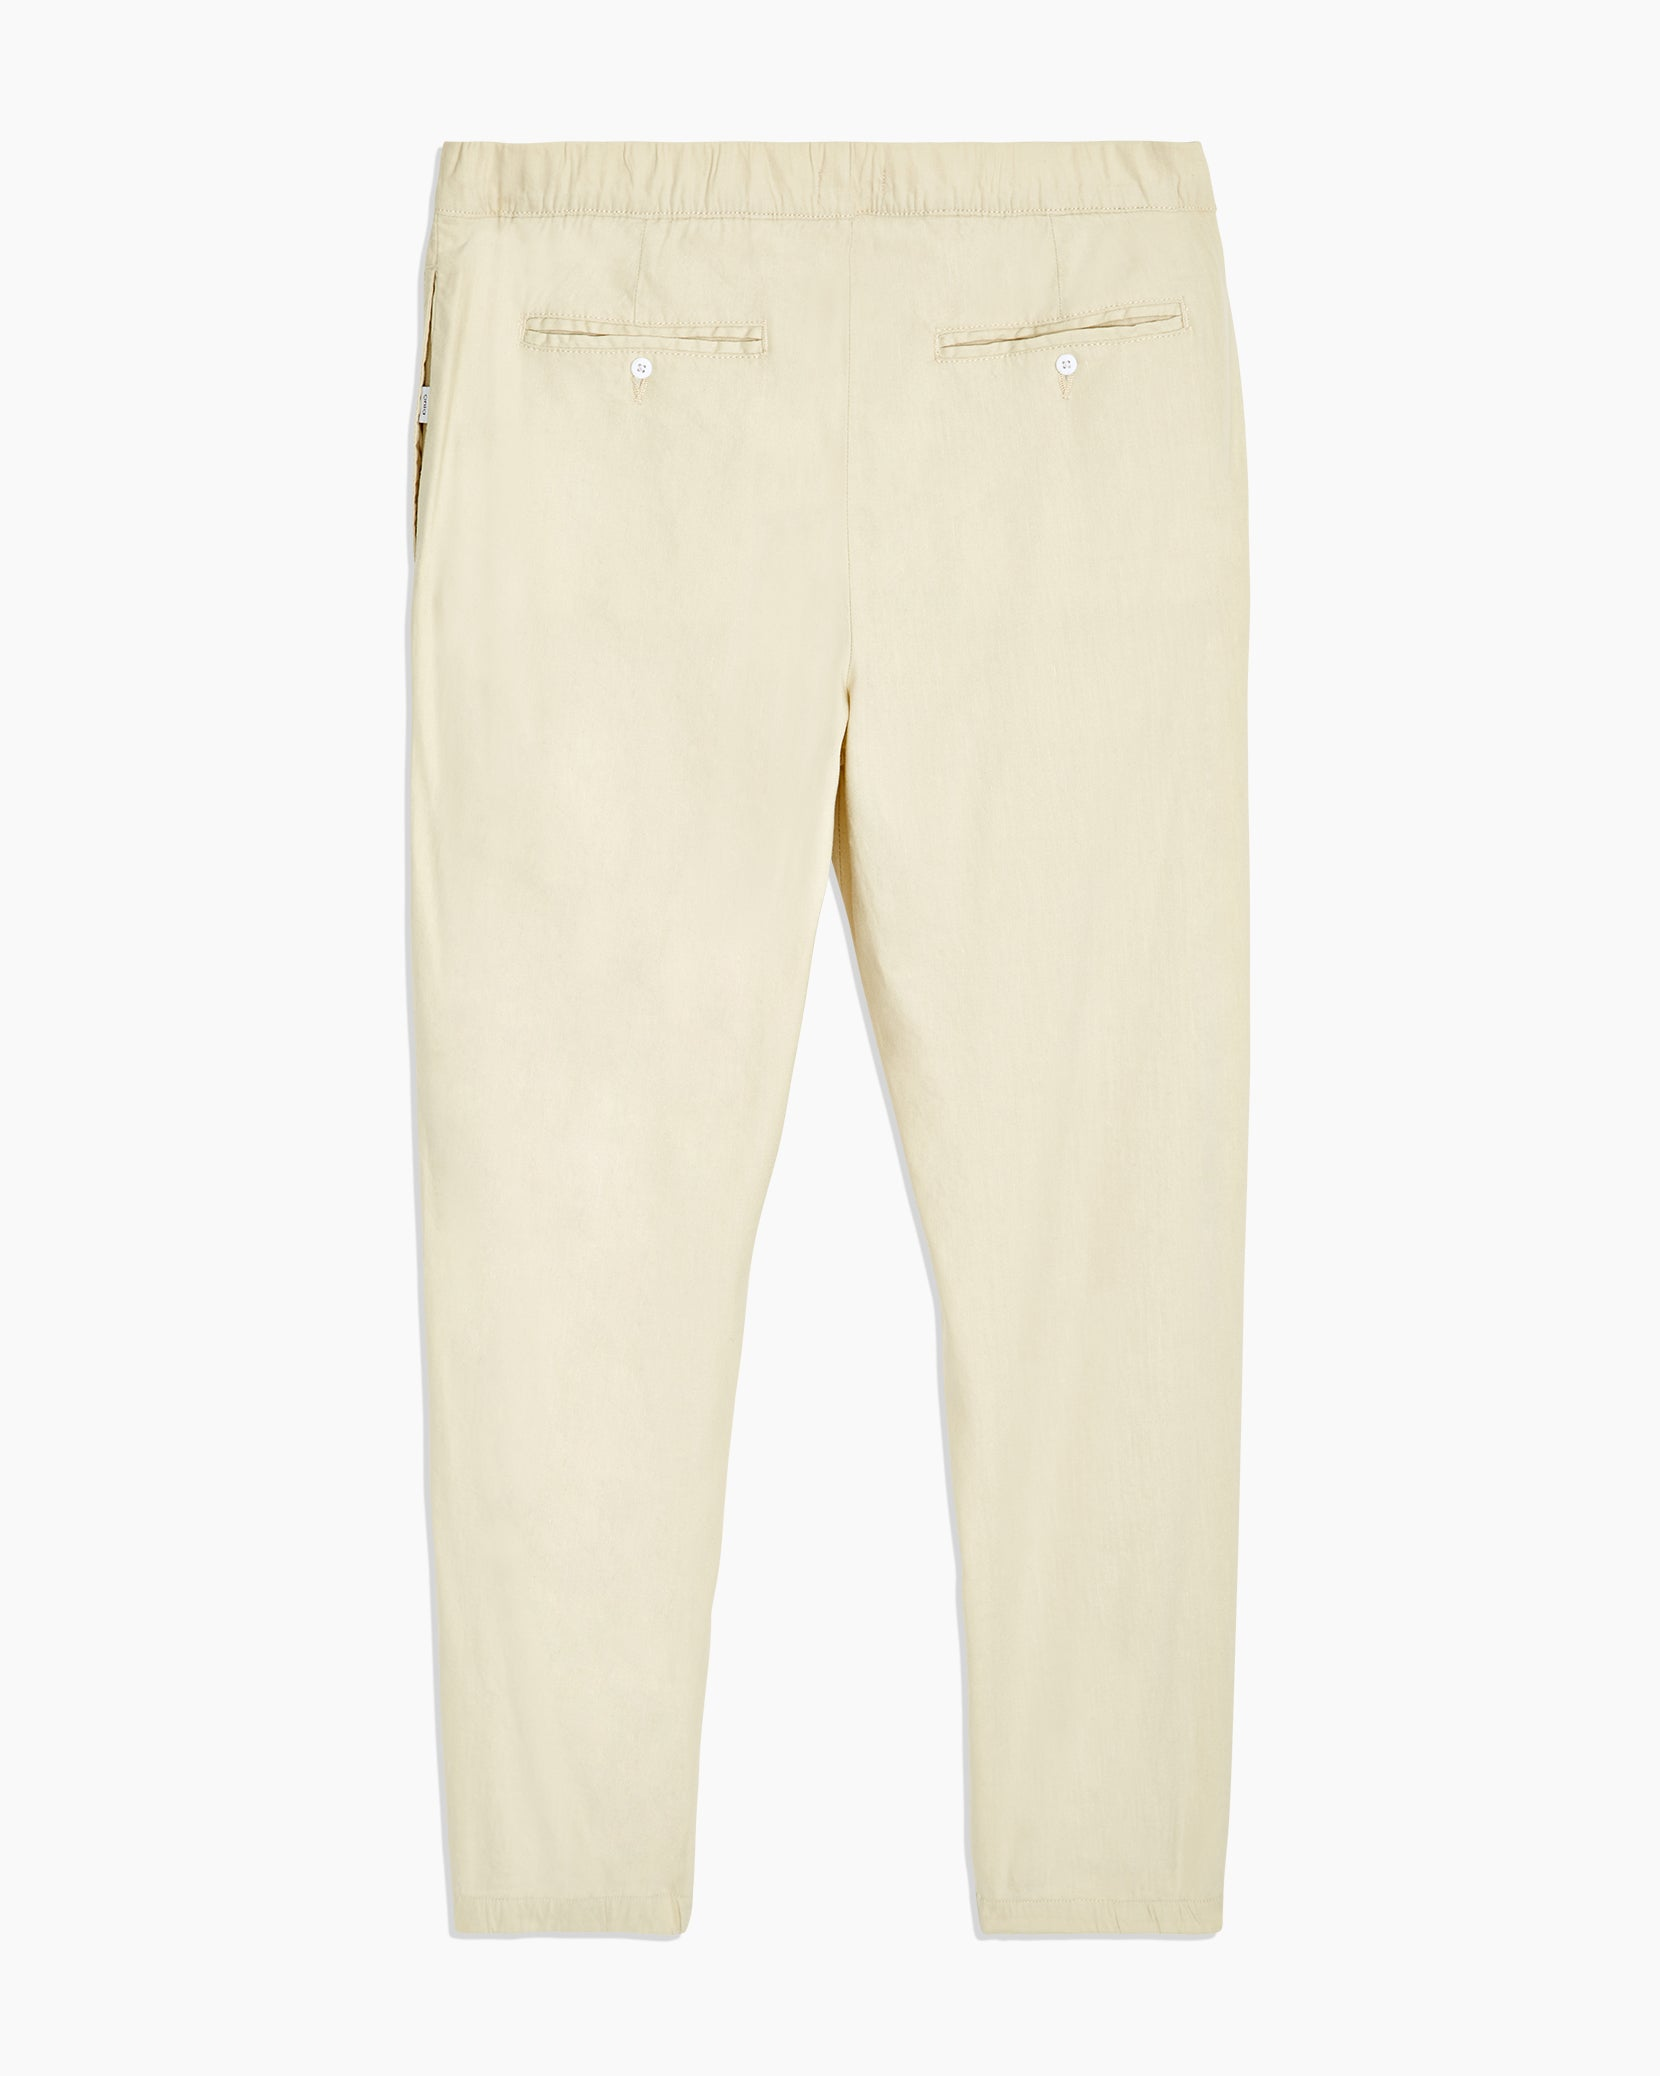 Elijah Stretch Linen Pant in Beige - 2 - Onia